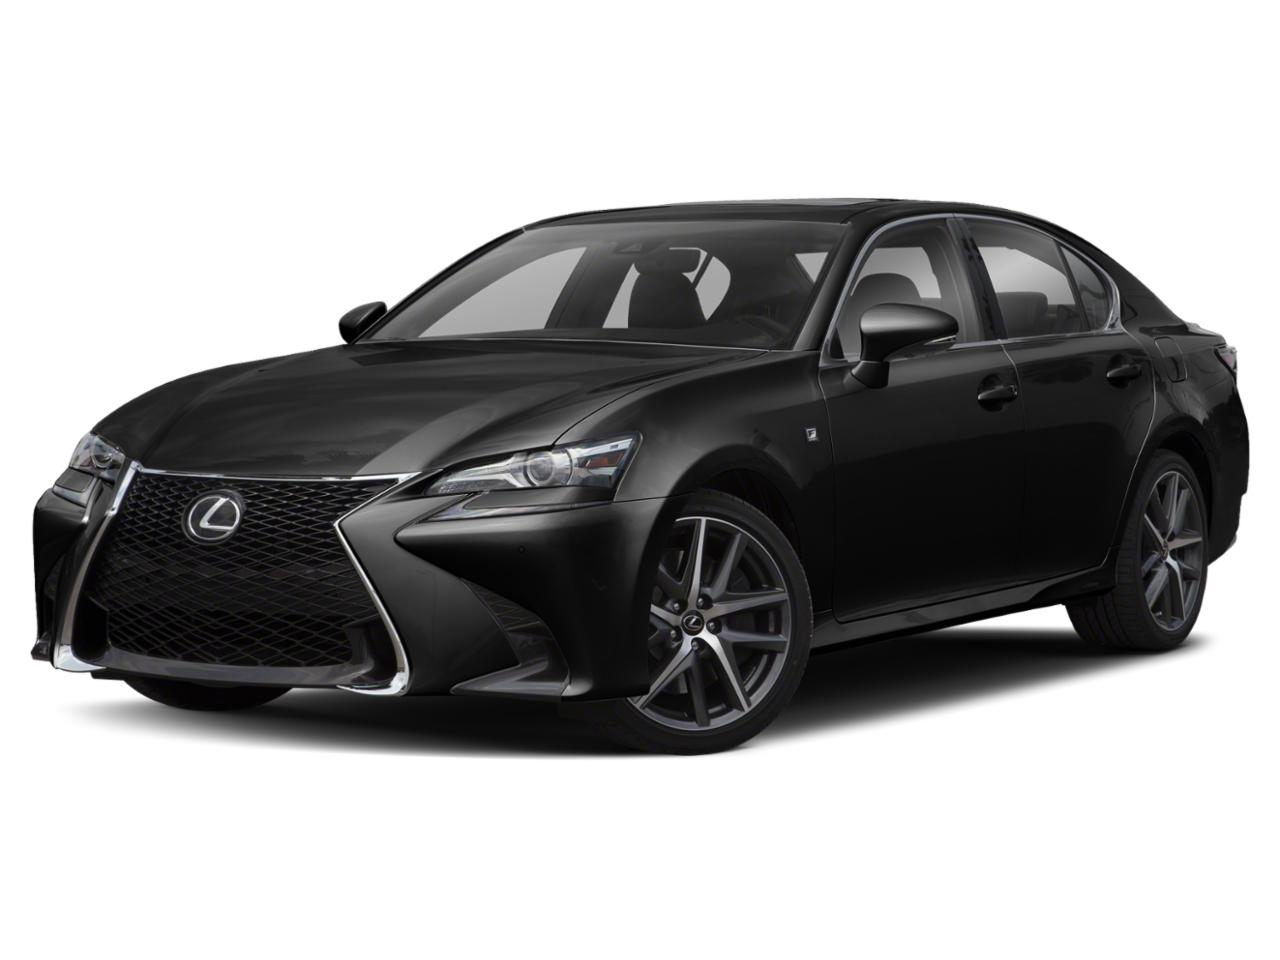 2018 Lexus GS 350 Vehicle Photo in Cary, NC 27511